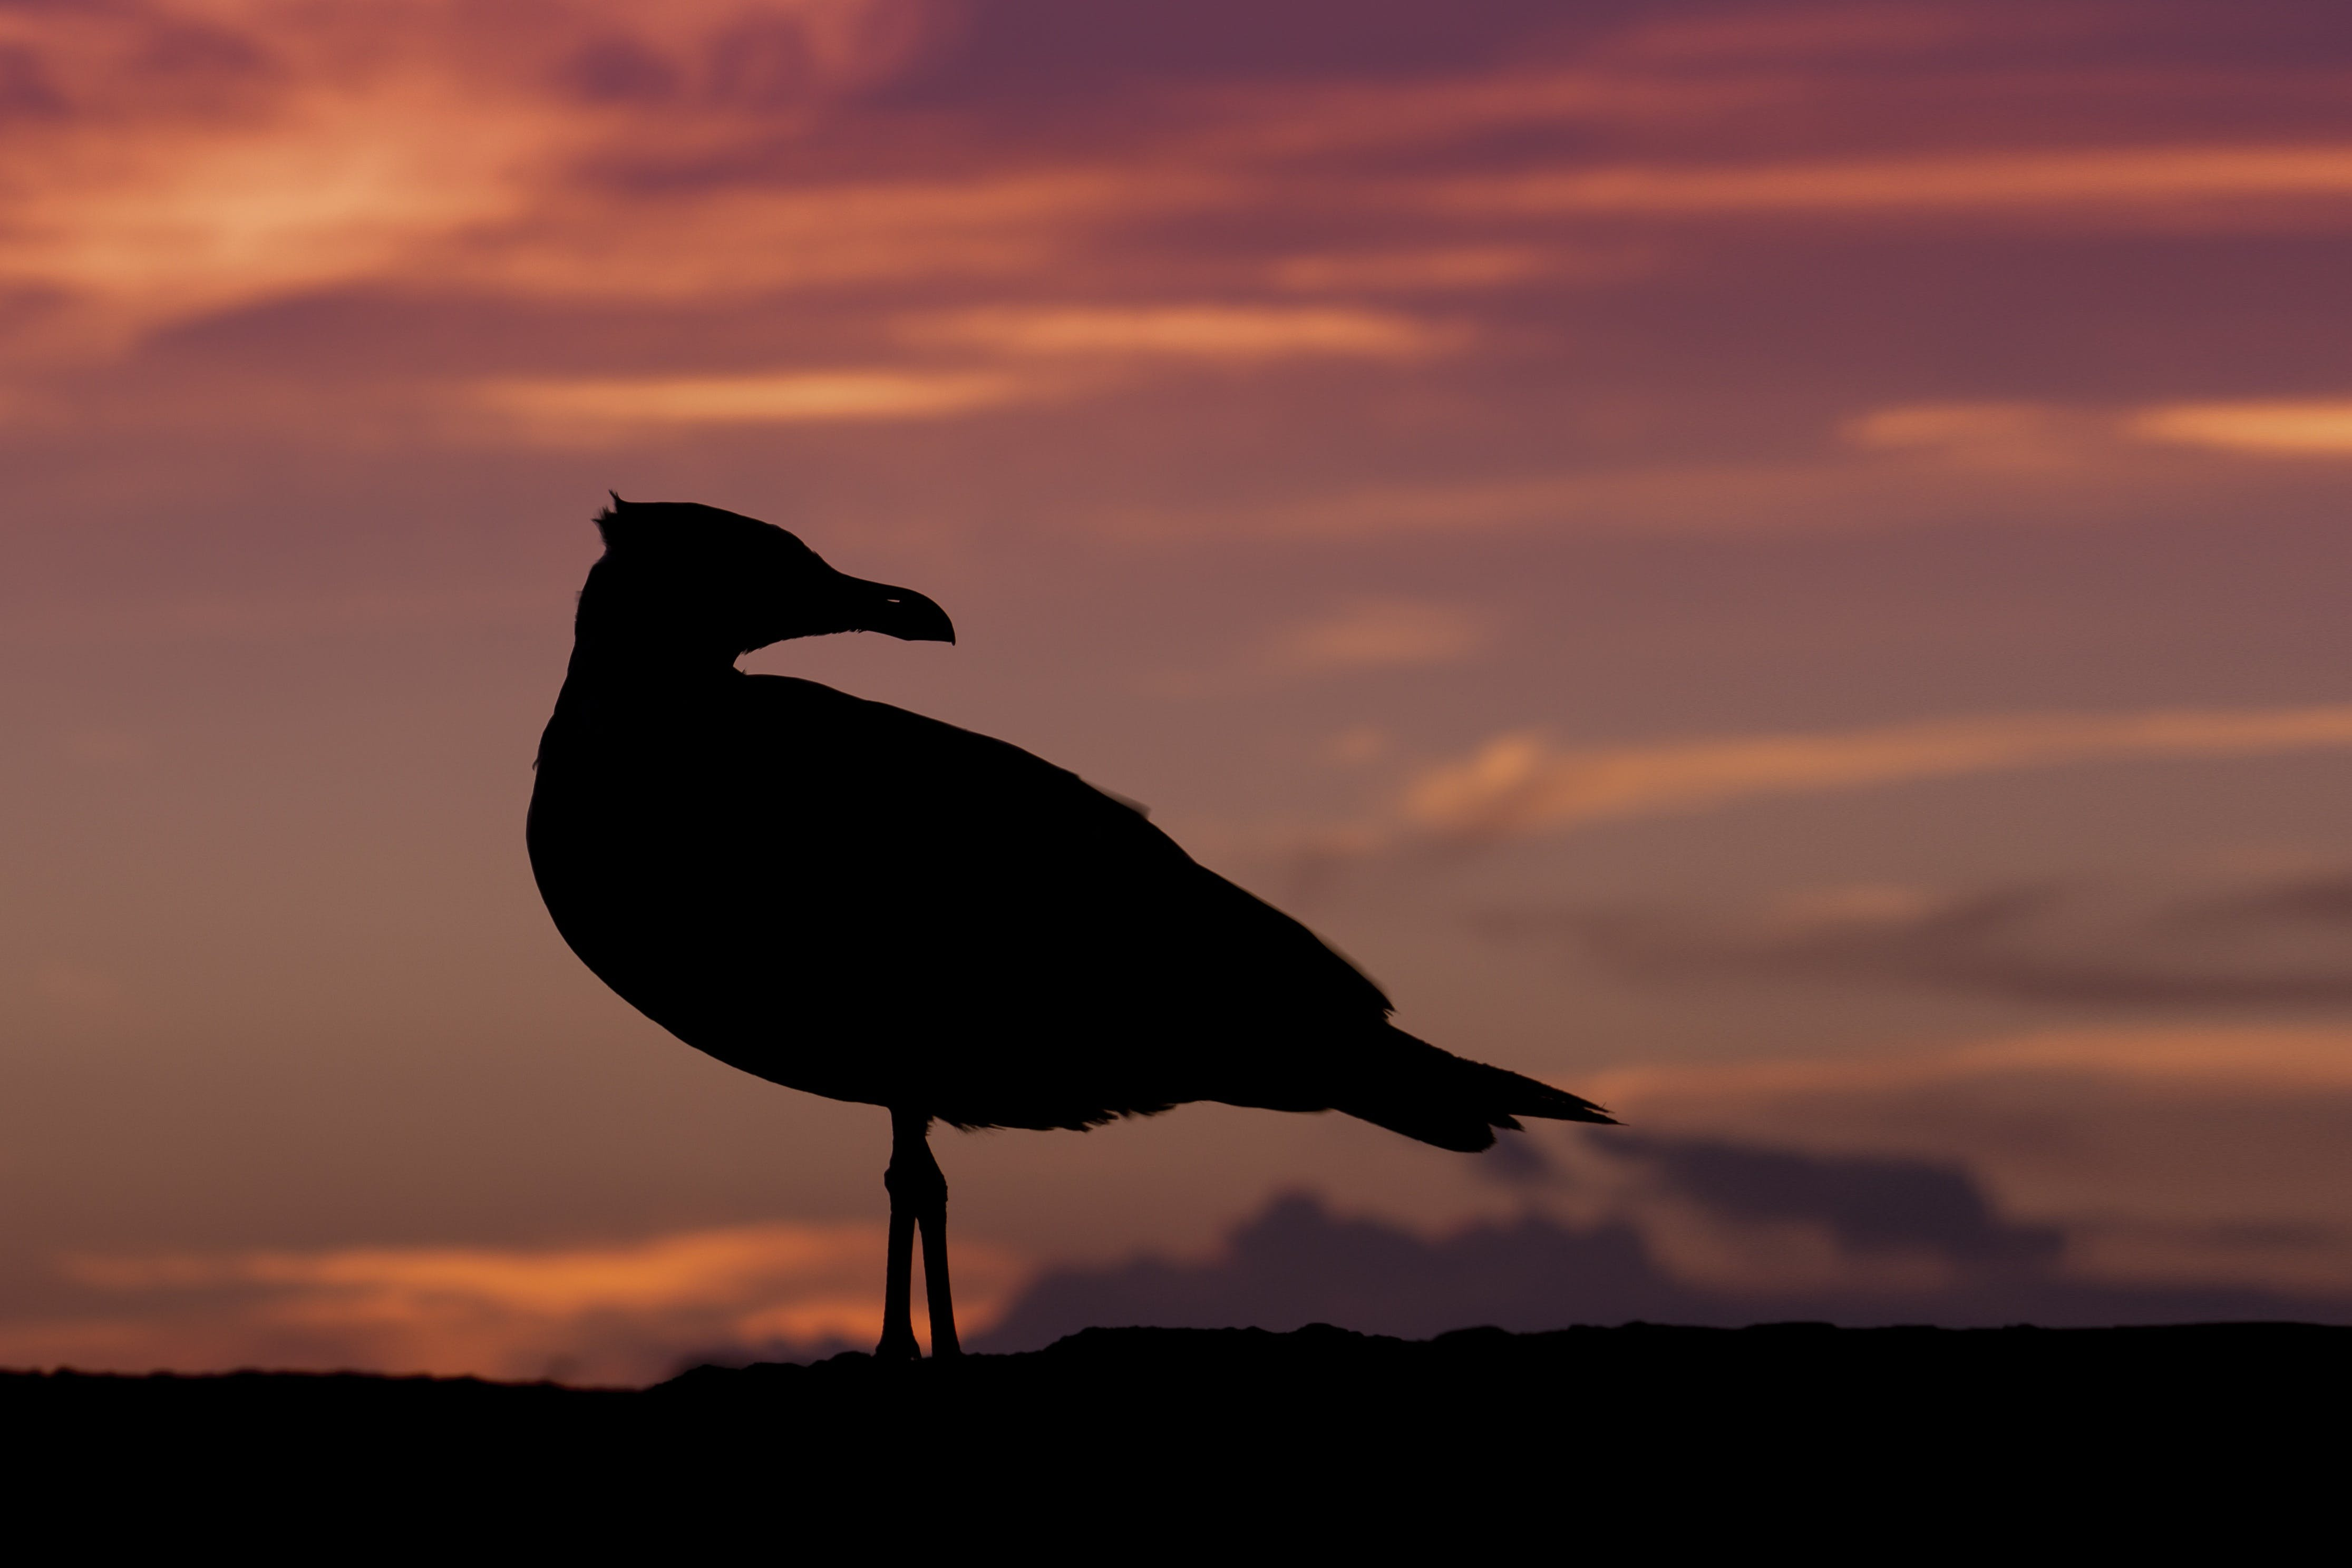 Black Bird on Afternoon View